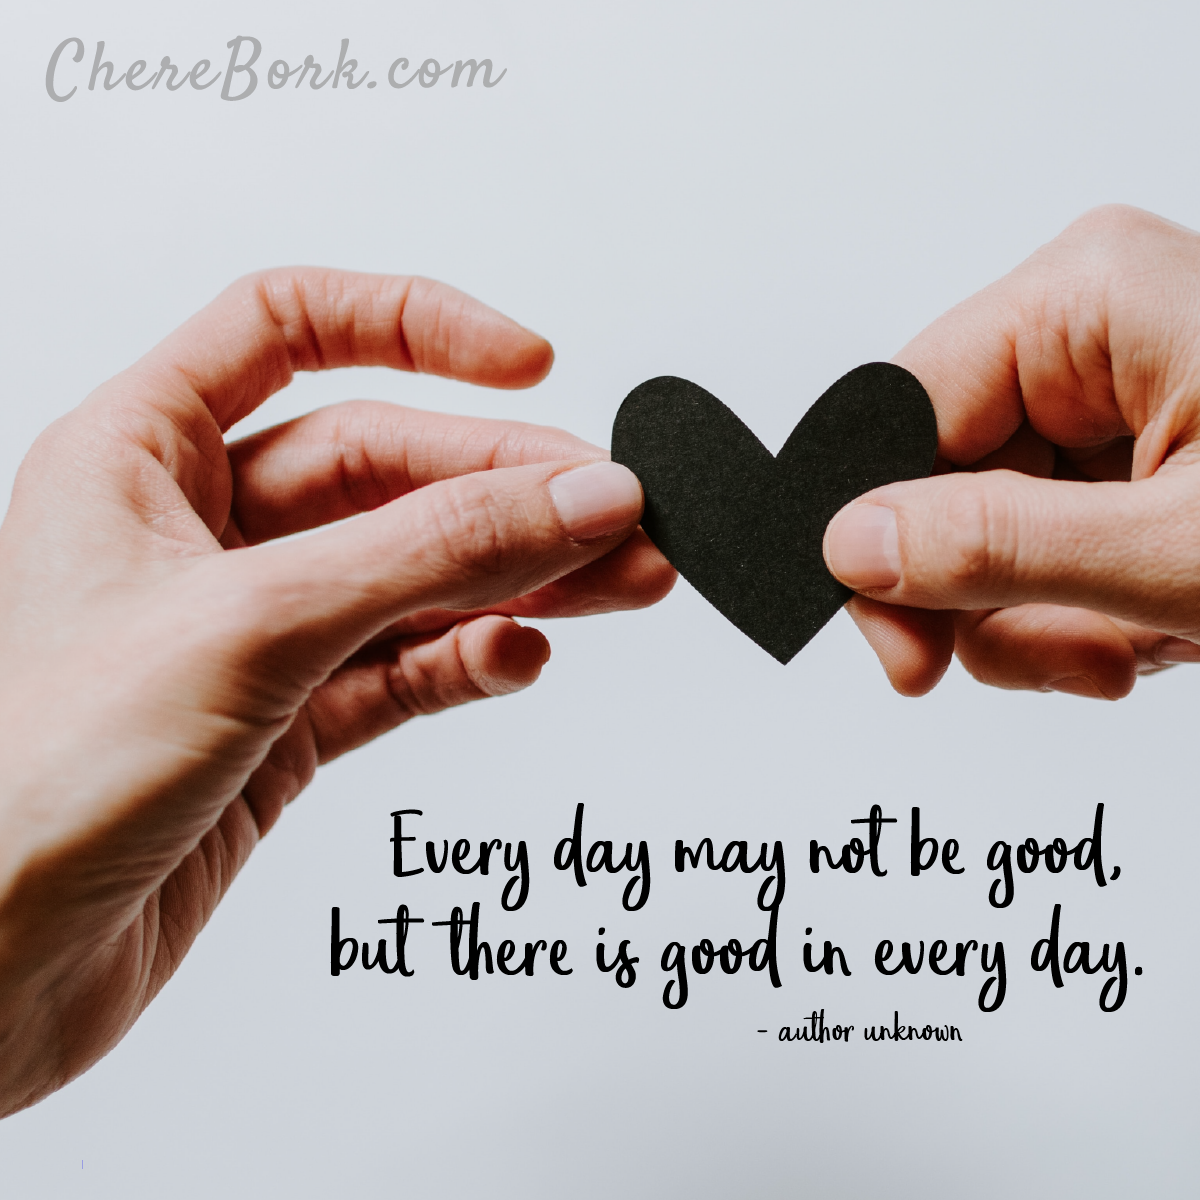 Every day may not be good, but there is good in every day. -Author unknown